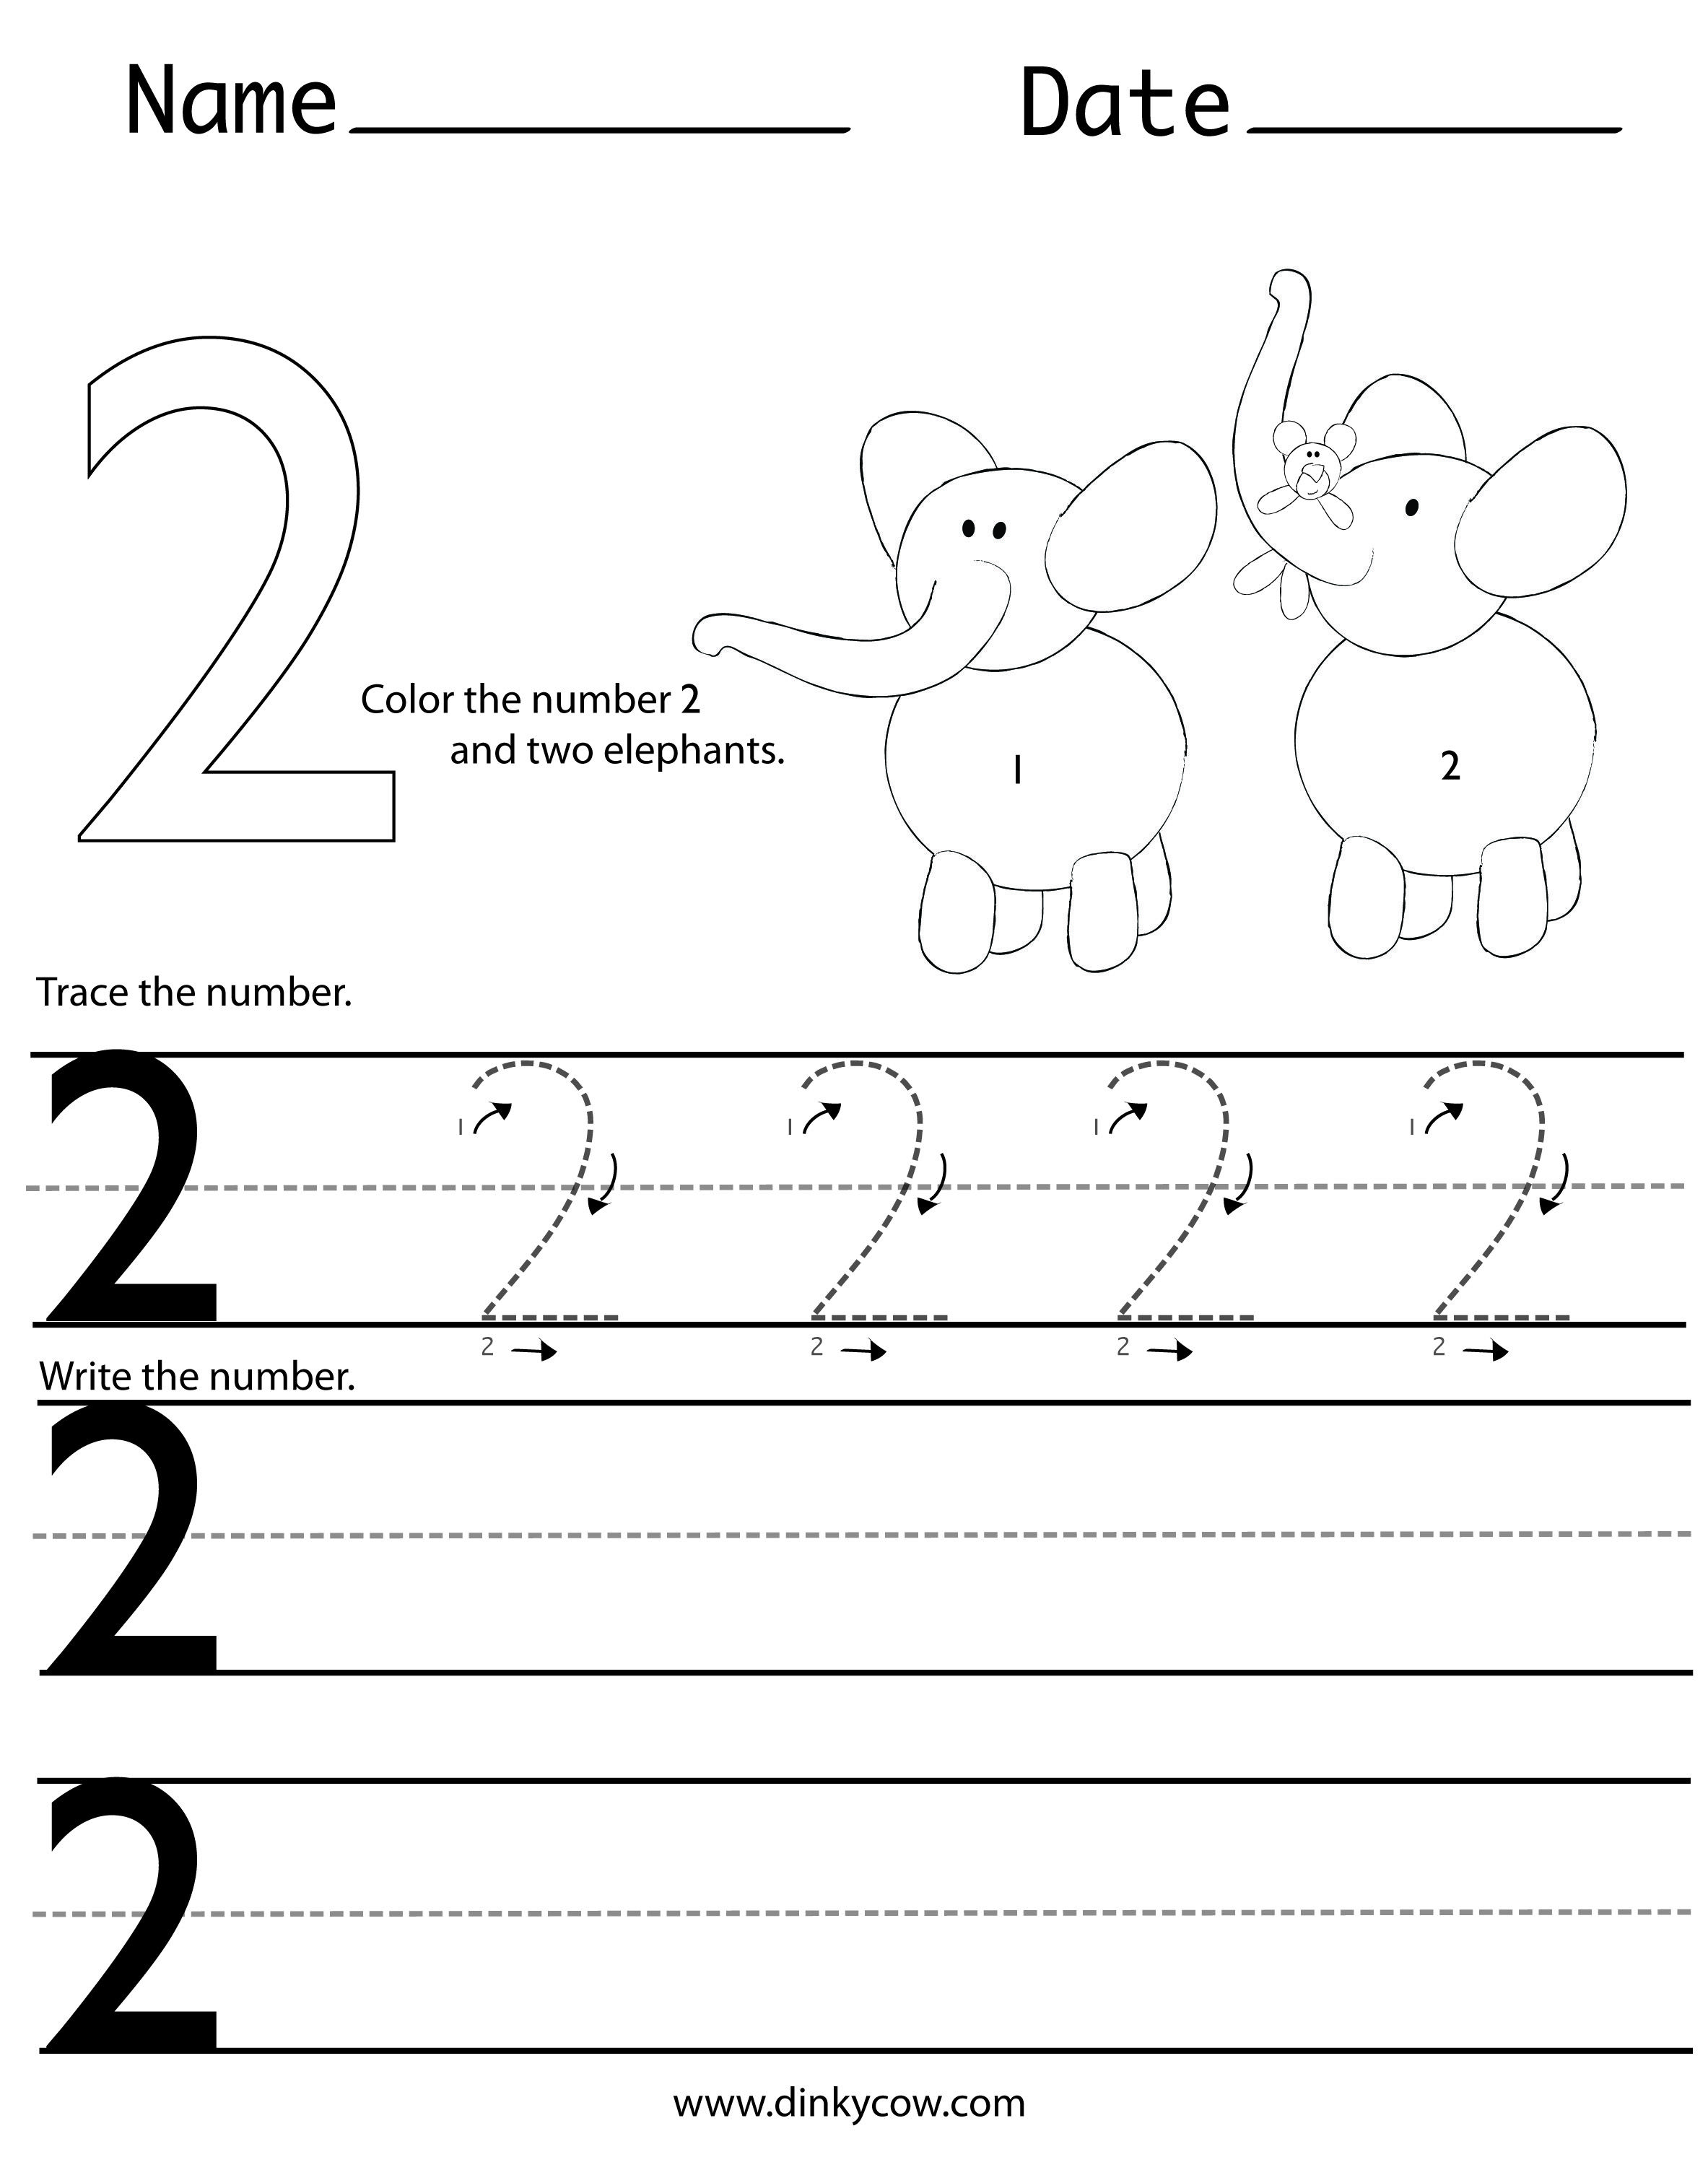 worksheet Number Handwriting Worksheets writing number 2 jpg daphne learning pinterest numbers worksheets printable that you can use to train your childrens skills